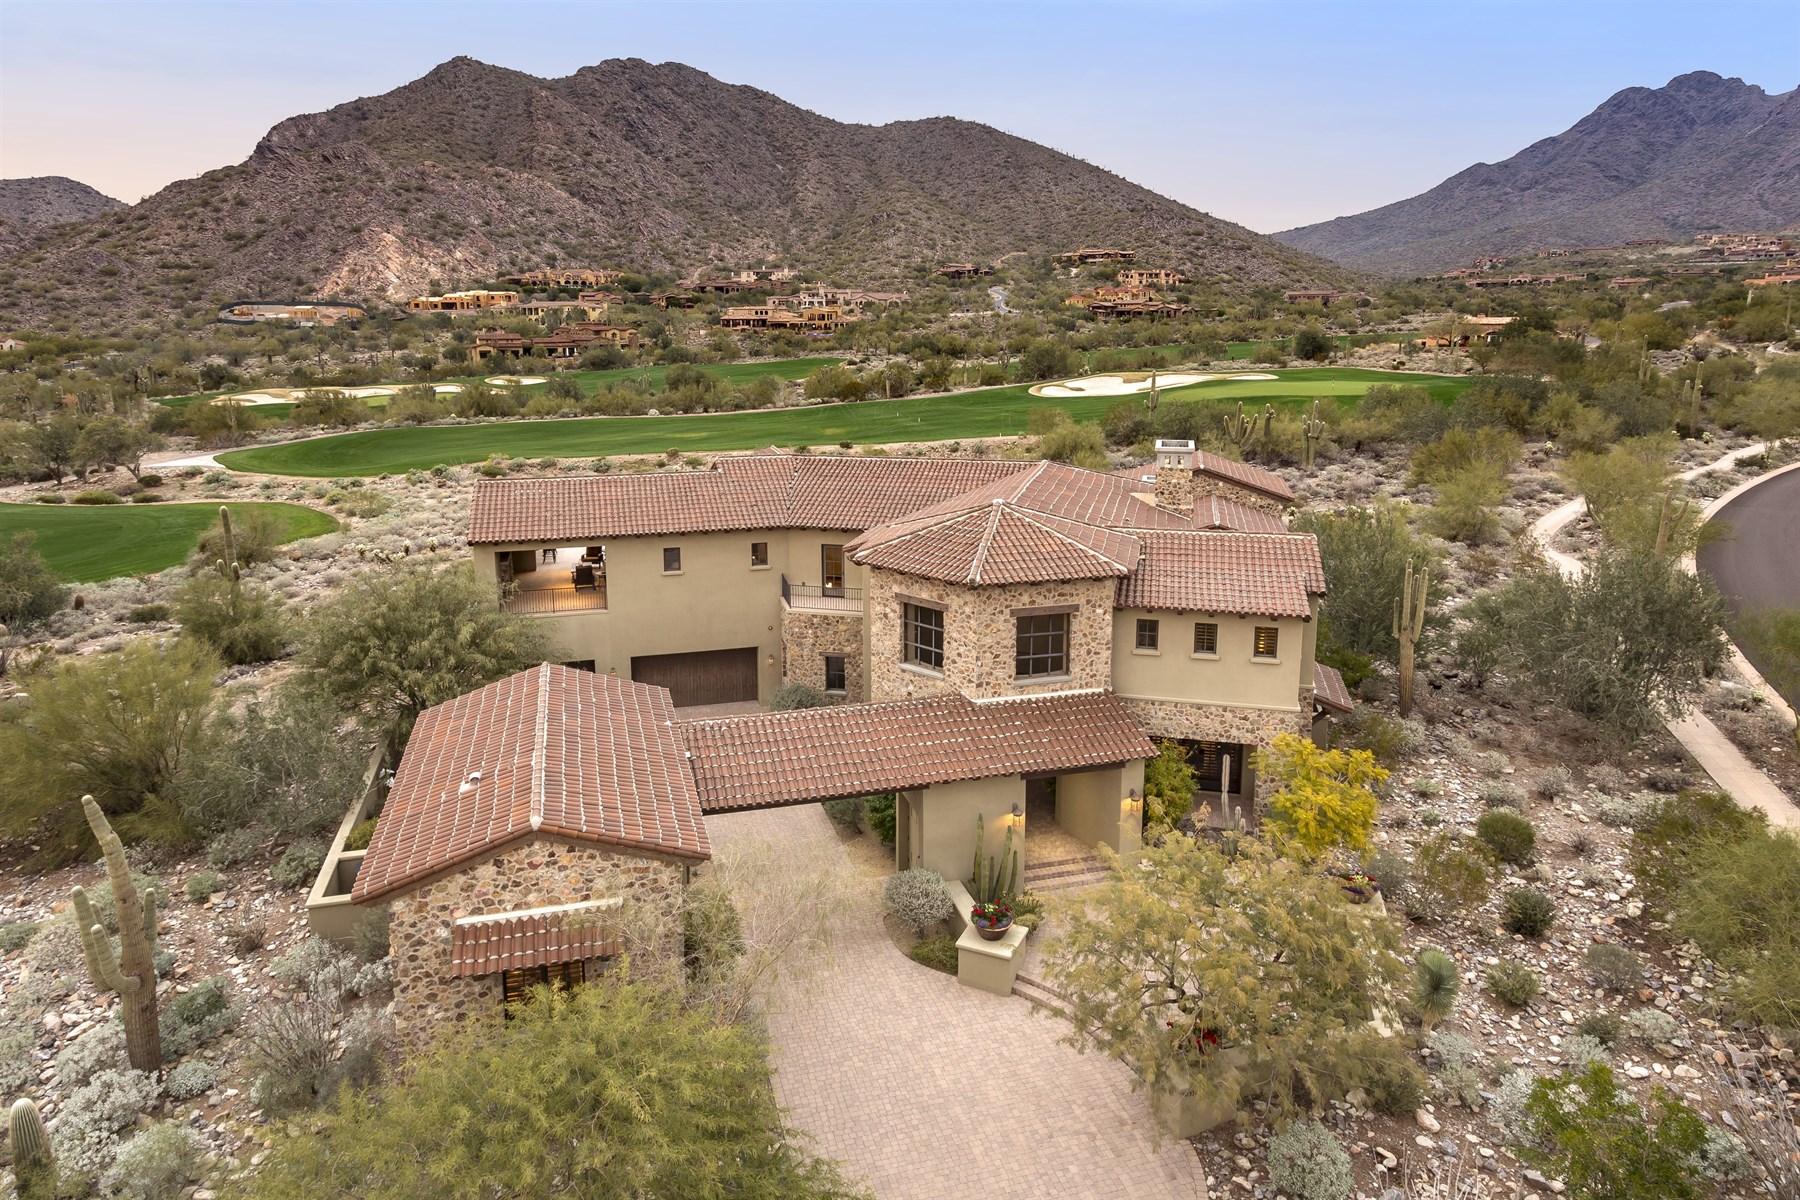 Single Family Home for Sale at Perfectly oriented on an over-sized lot with captivating views 10338 E Mountain Spring Rd #1243 Scottsdale, Arizona 85255 United States